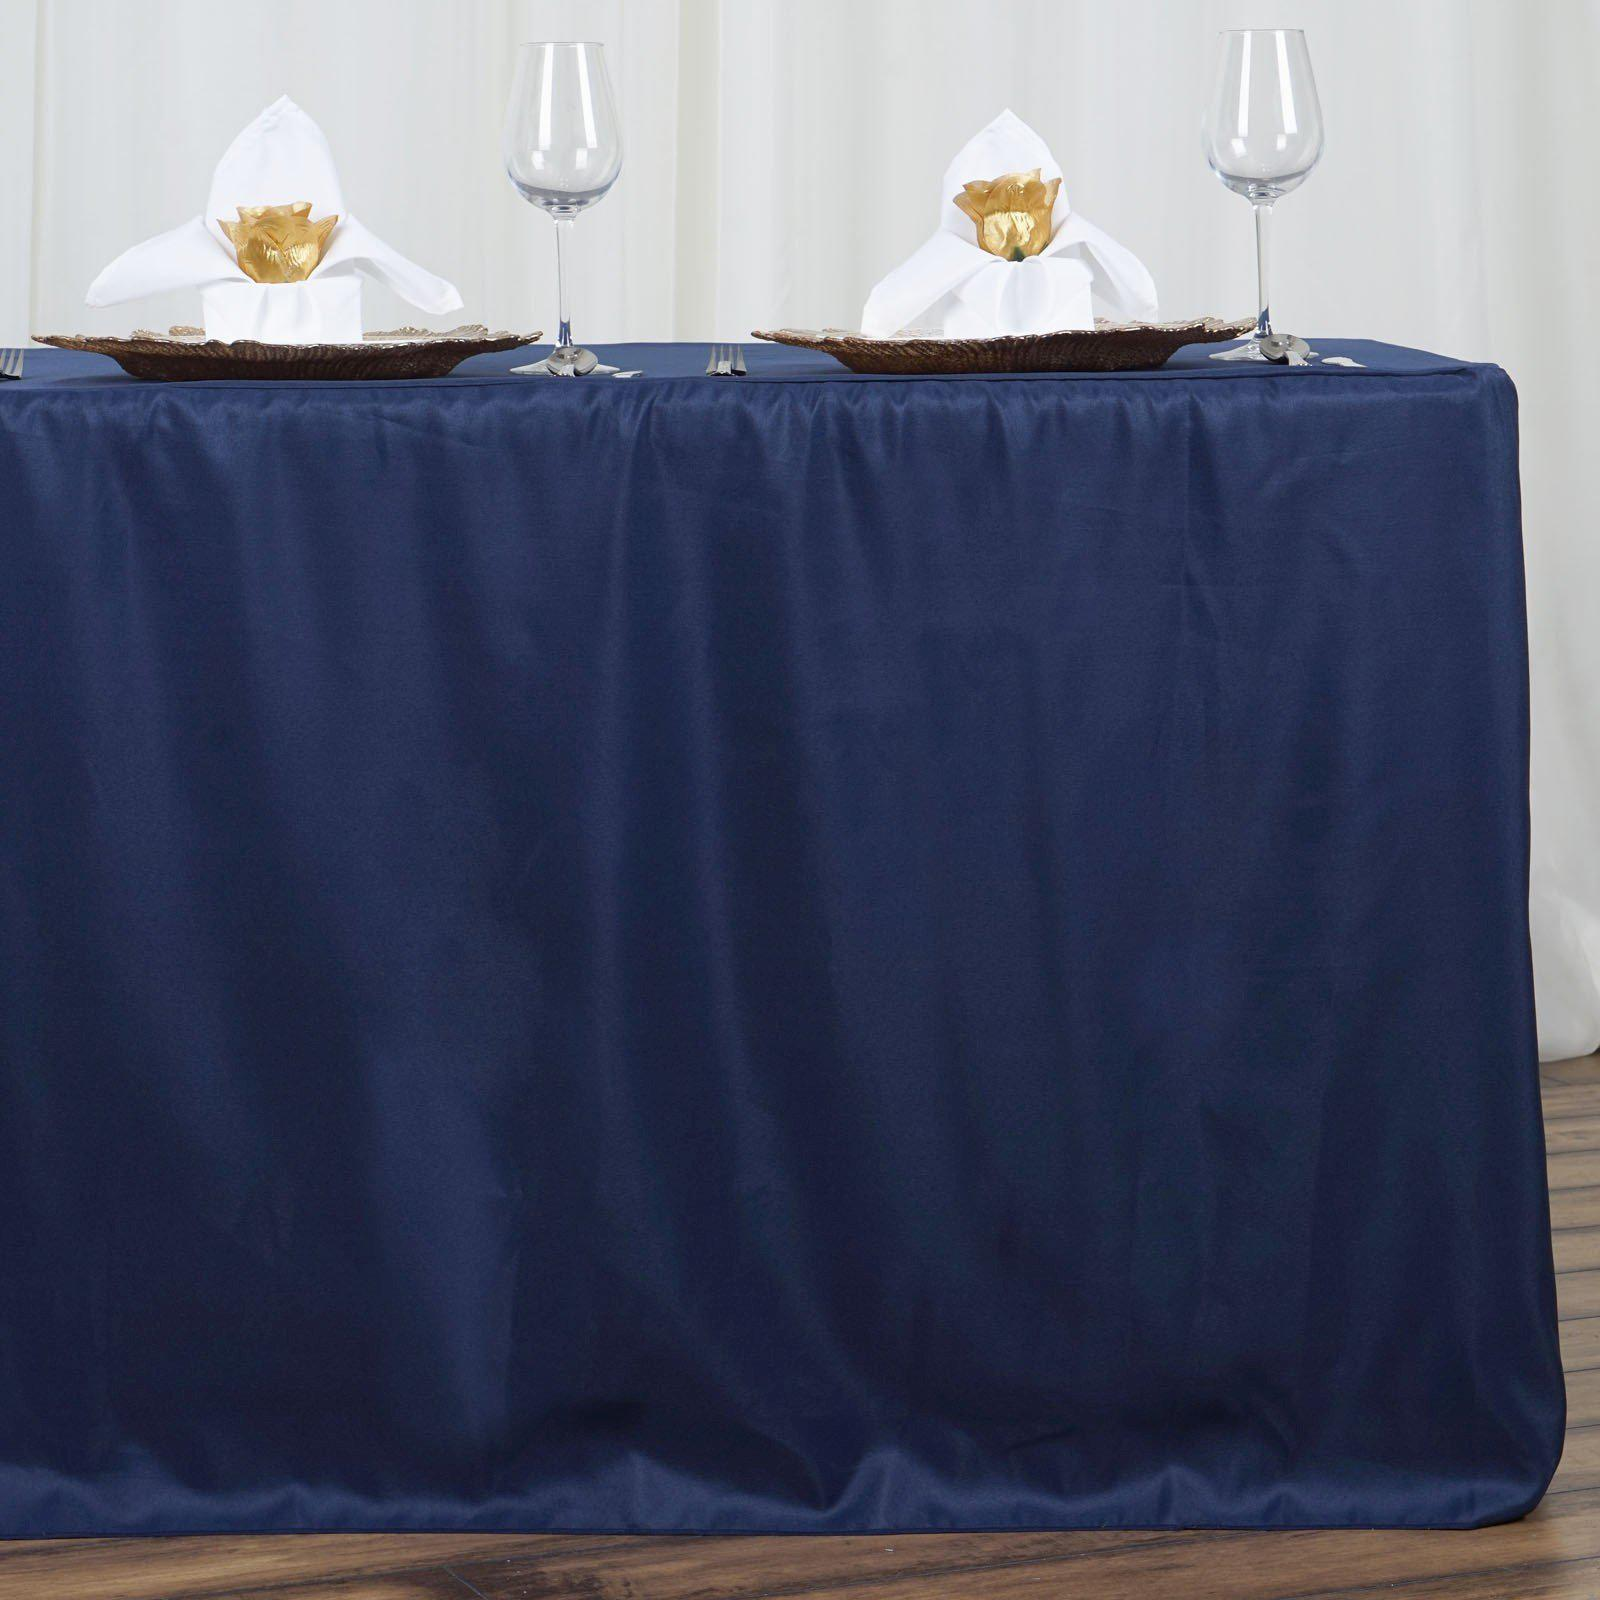 ... 6FT Fitted NAVY BLUE Wholesale Polyester Table Cover Wedding Banquet Event Tablecloth ... & 6FT Navy Blue Fitted Polyester Rectangular Table Cover ...